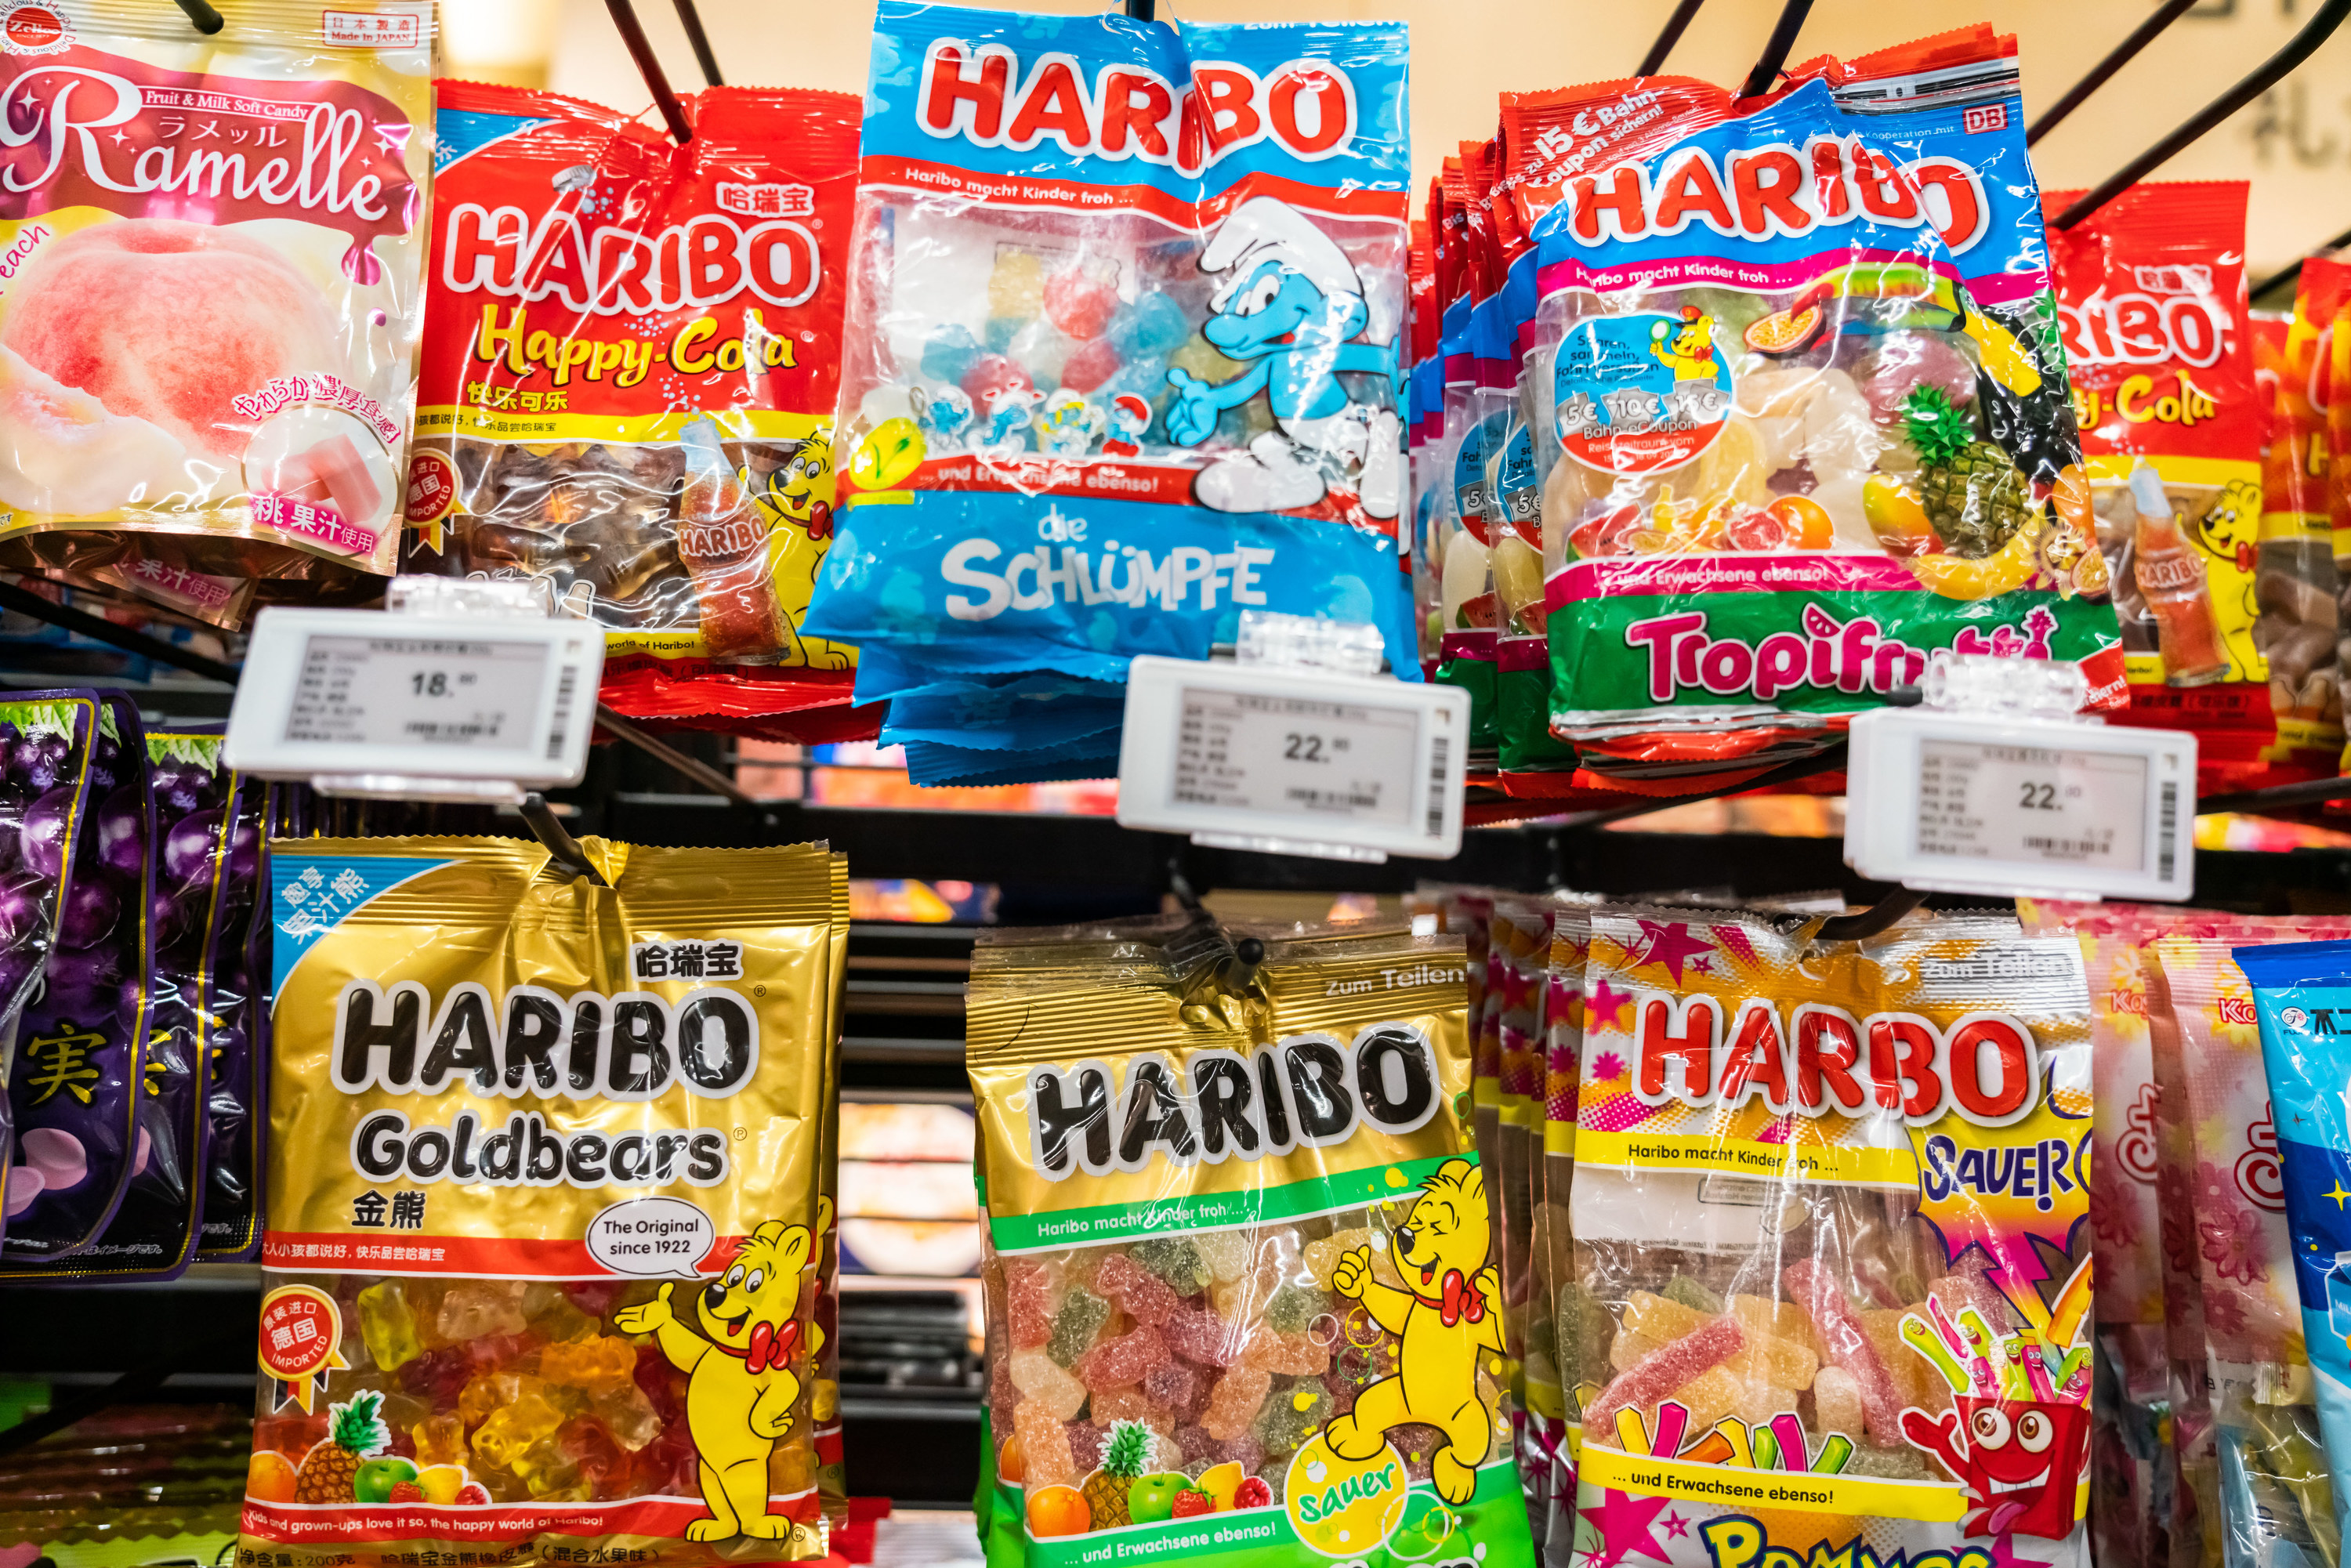 A shelf of Haribo gummies at the grocery store